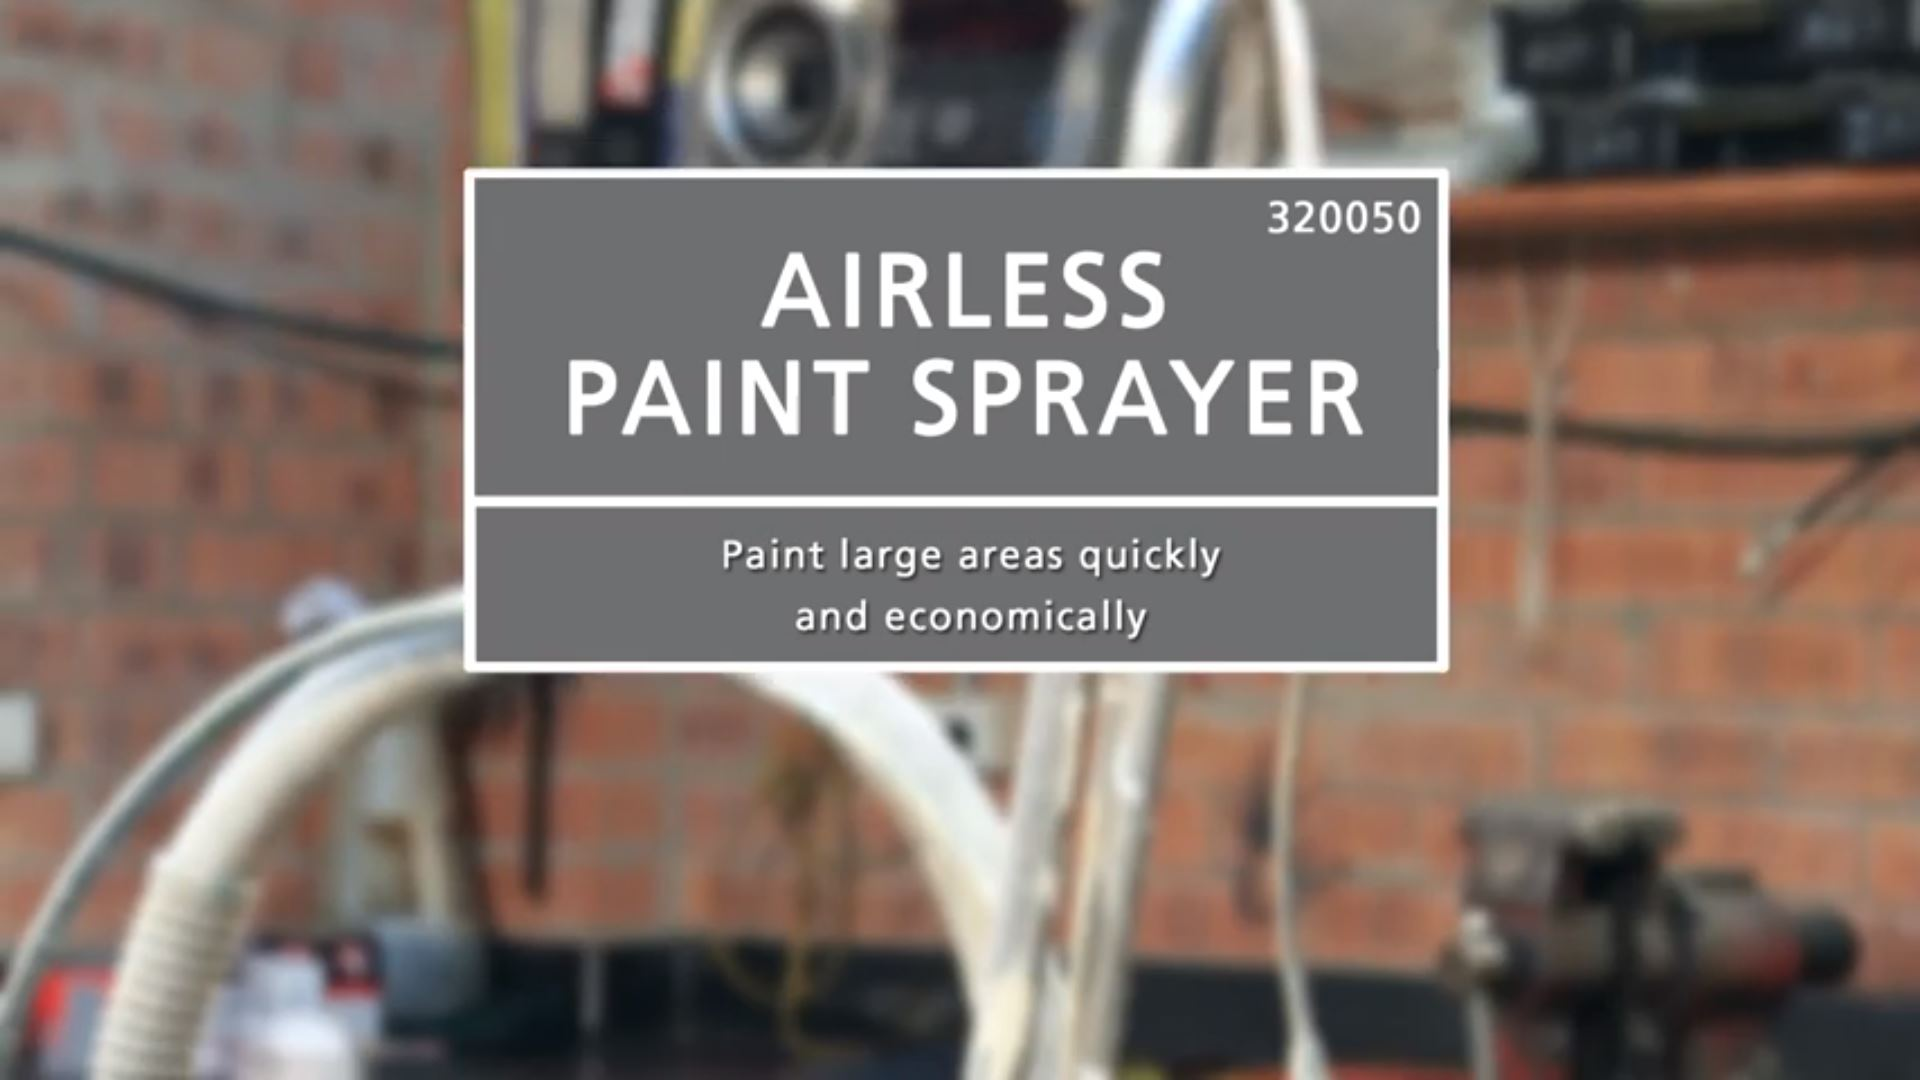 How to Operate an Airless Sprayer